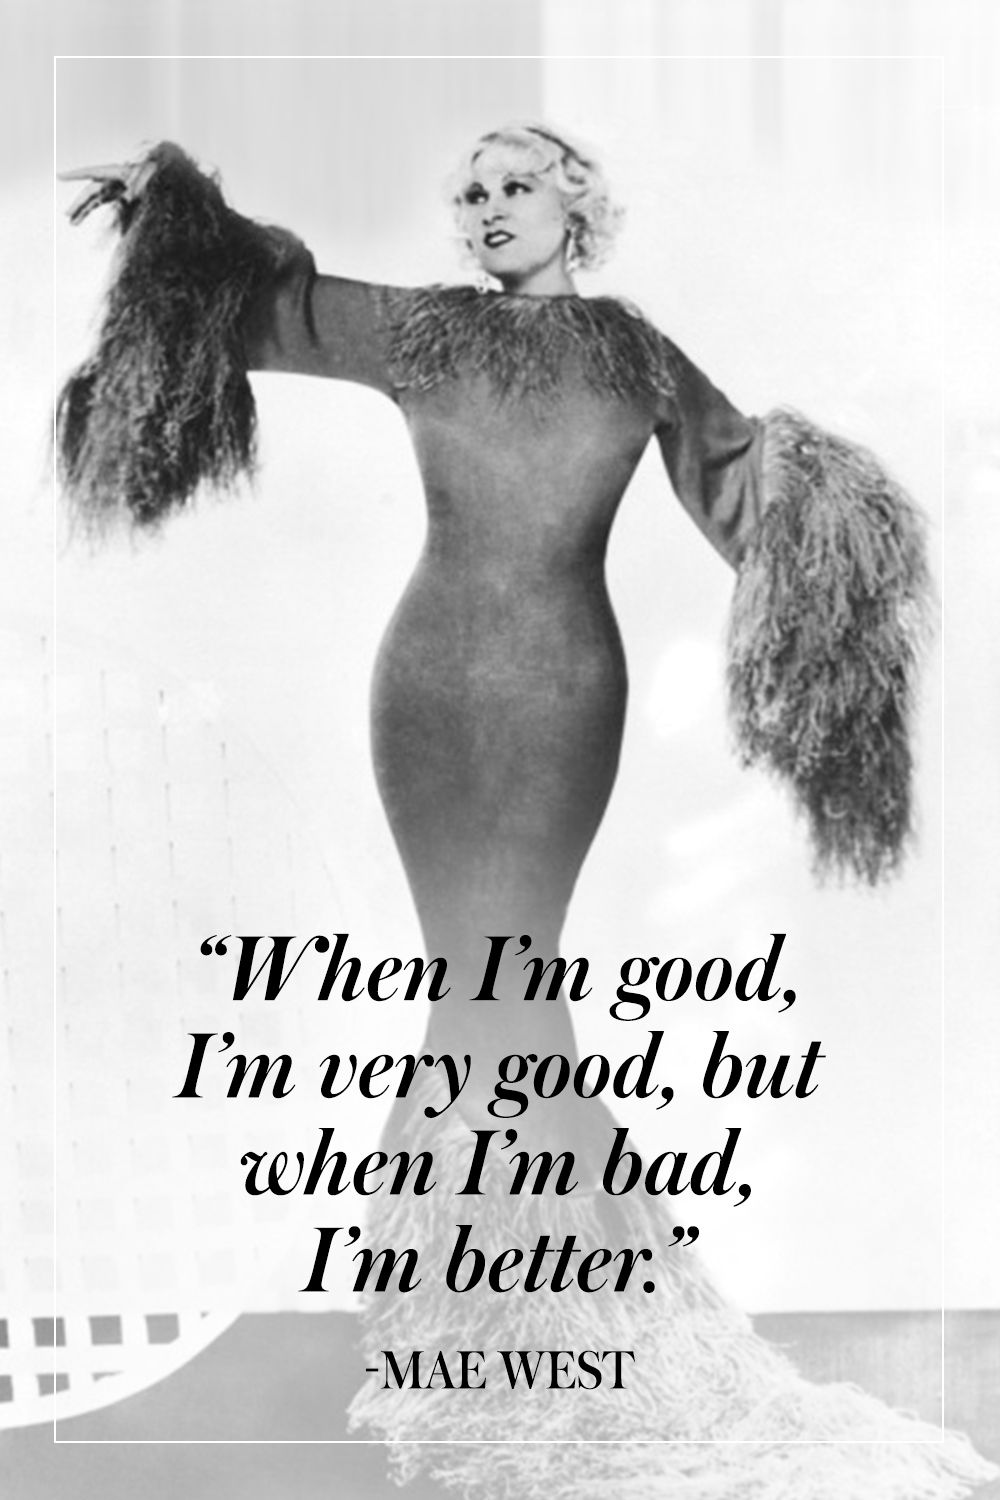 15 Mae West Quotes To Live By  - TownandCountryMag.com